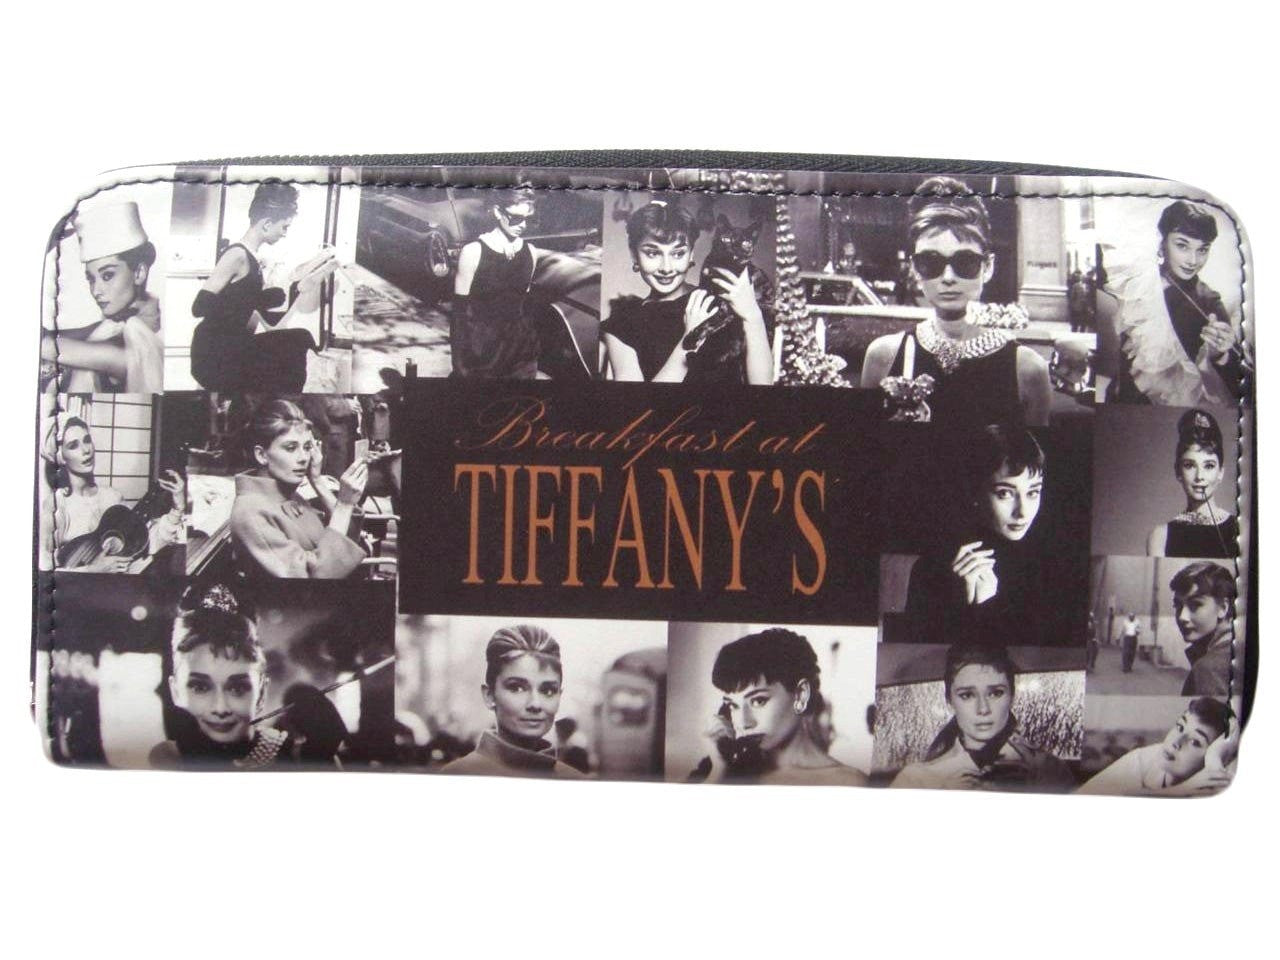 Audrey Hepburn Rare Photo Collage Breakfast at Tiffany's Wallet Purse